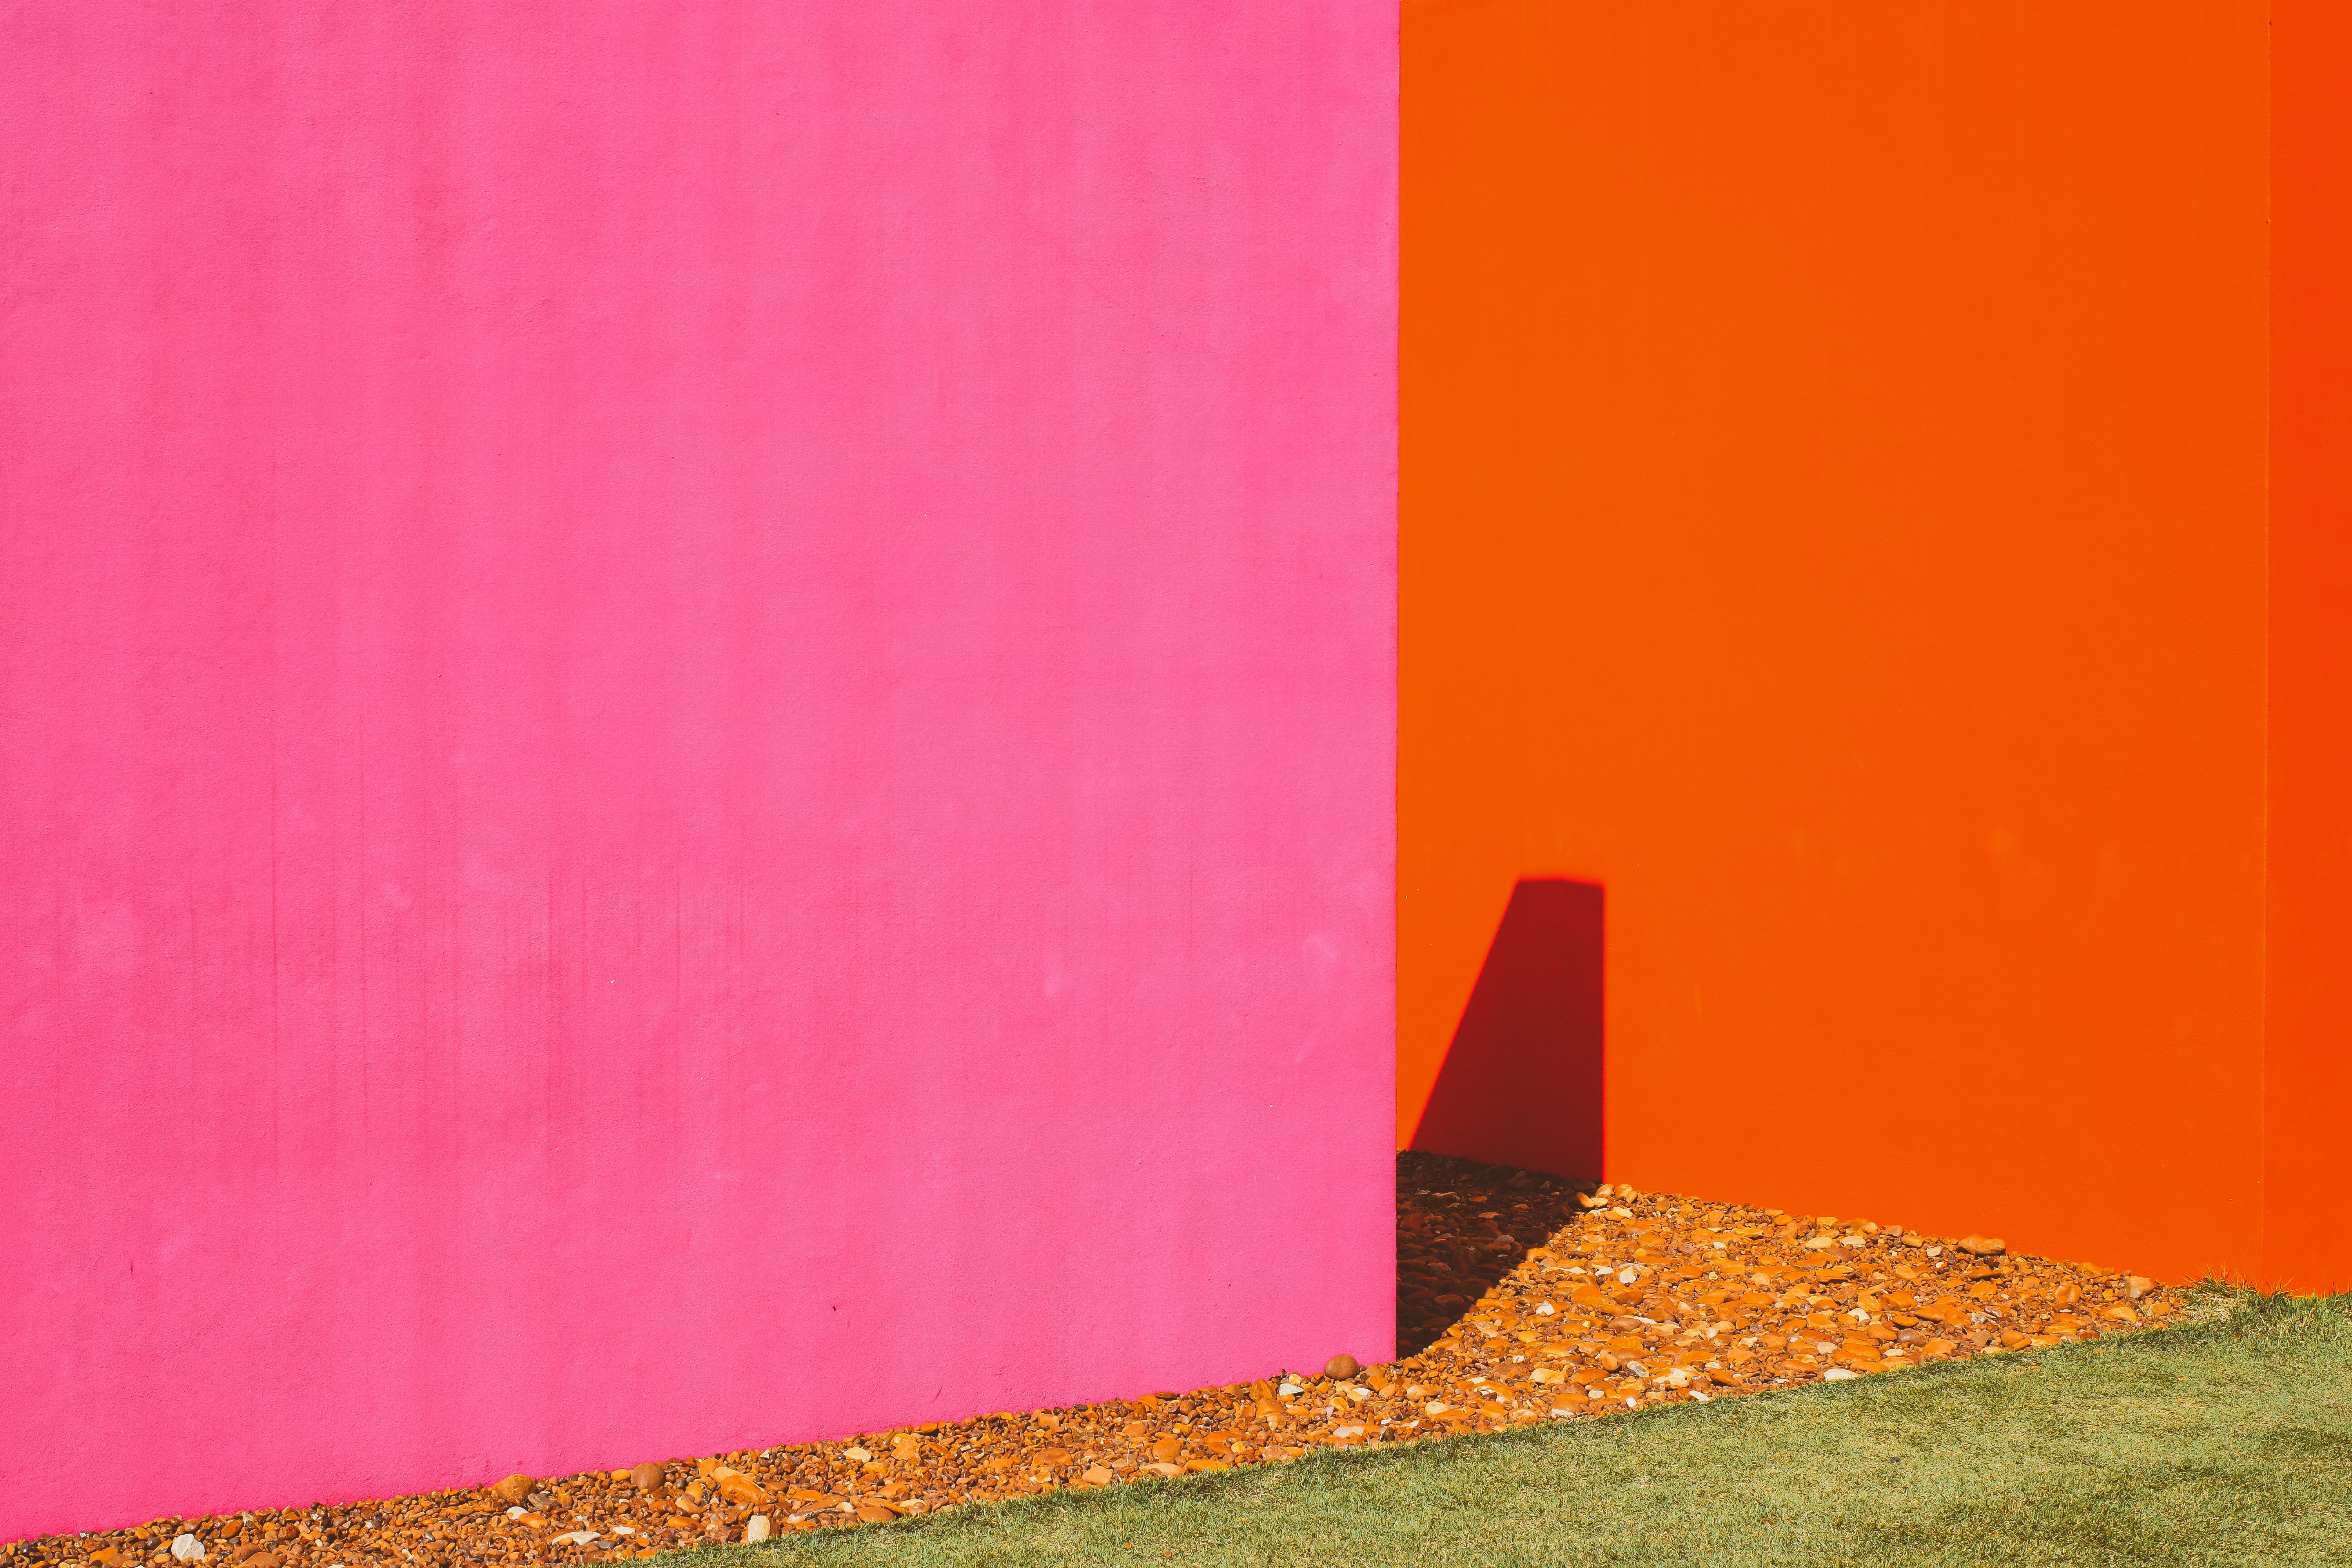 pink painted wall near orange painted wall